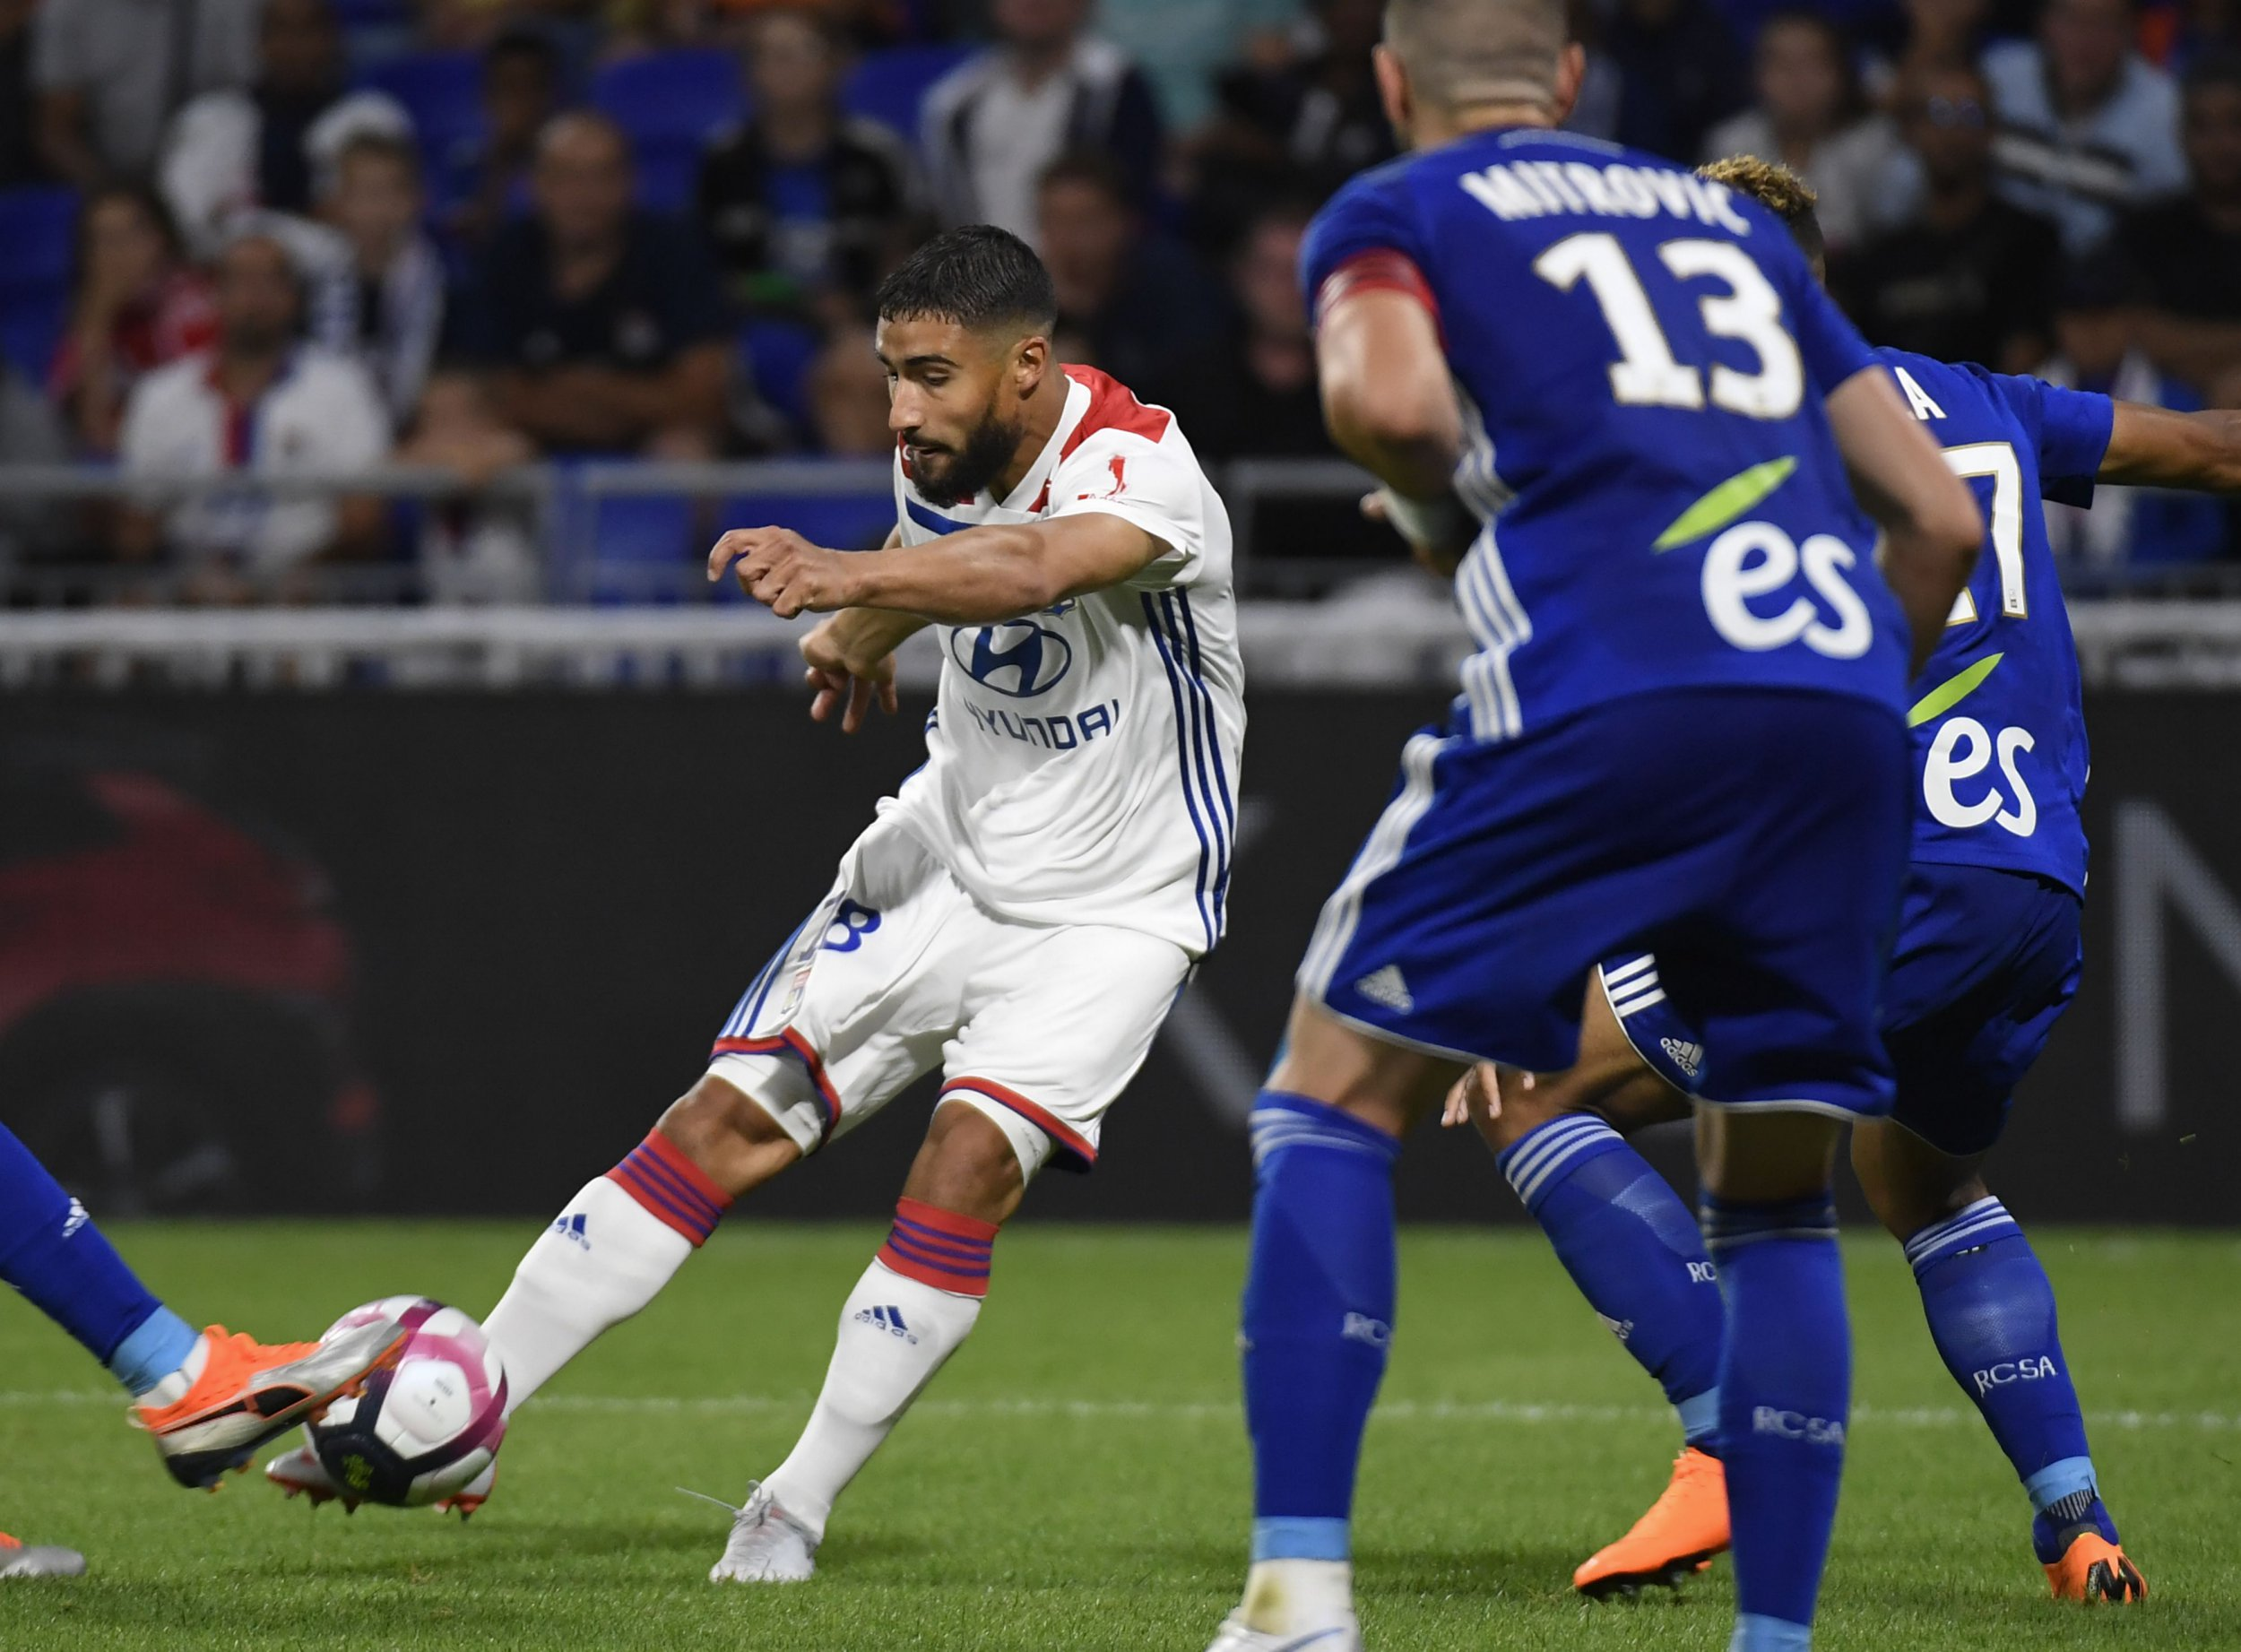 Lyon's French midfielder Nabil Fekir (L) shoots the ball during the French L1 football match between Lyon (OL) and Strasbourg (RCSA) on August 24, 2018, at the Groupama Stadium in Decines-Charpieu, near Lyon, central-eastern France. (Photo by PHILIPPE DESMAZES / AFP)PHILIPPE DESMAZES/AFP/Getty Images